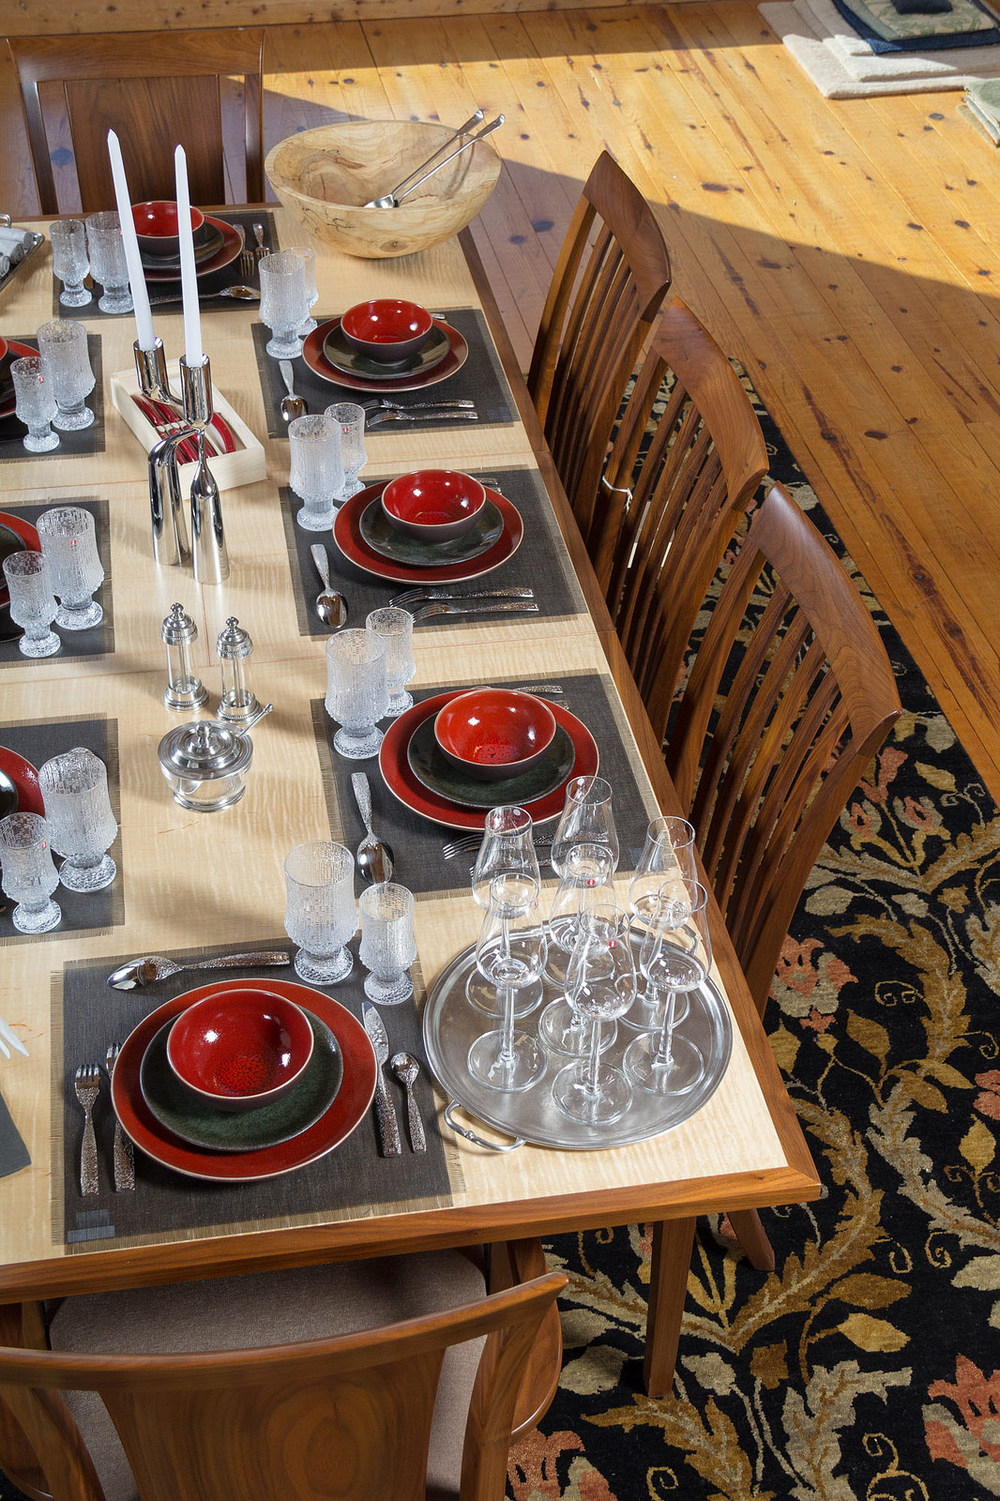 iittala  Essence Plus Champagne glasses , Match Pewter  Round tray with handles . Furniture from  Furniture by Dovetail  and  Adriance Furnituremakers , rug provided and selected by  Gregorian Oriental Rugs .